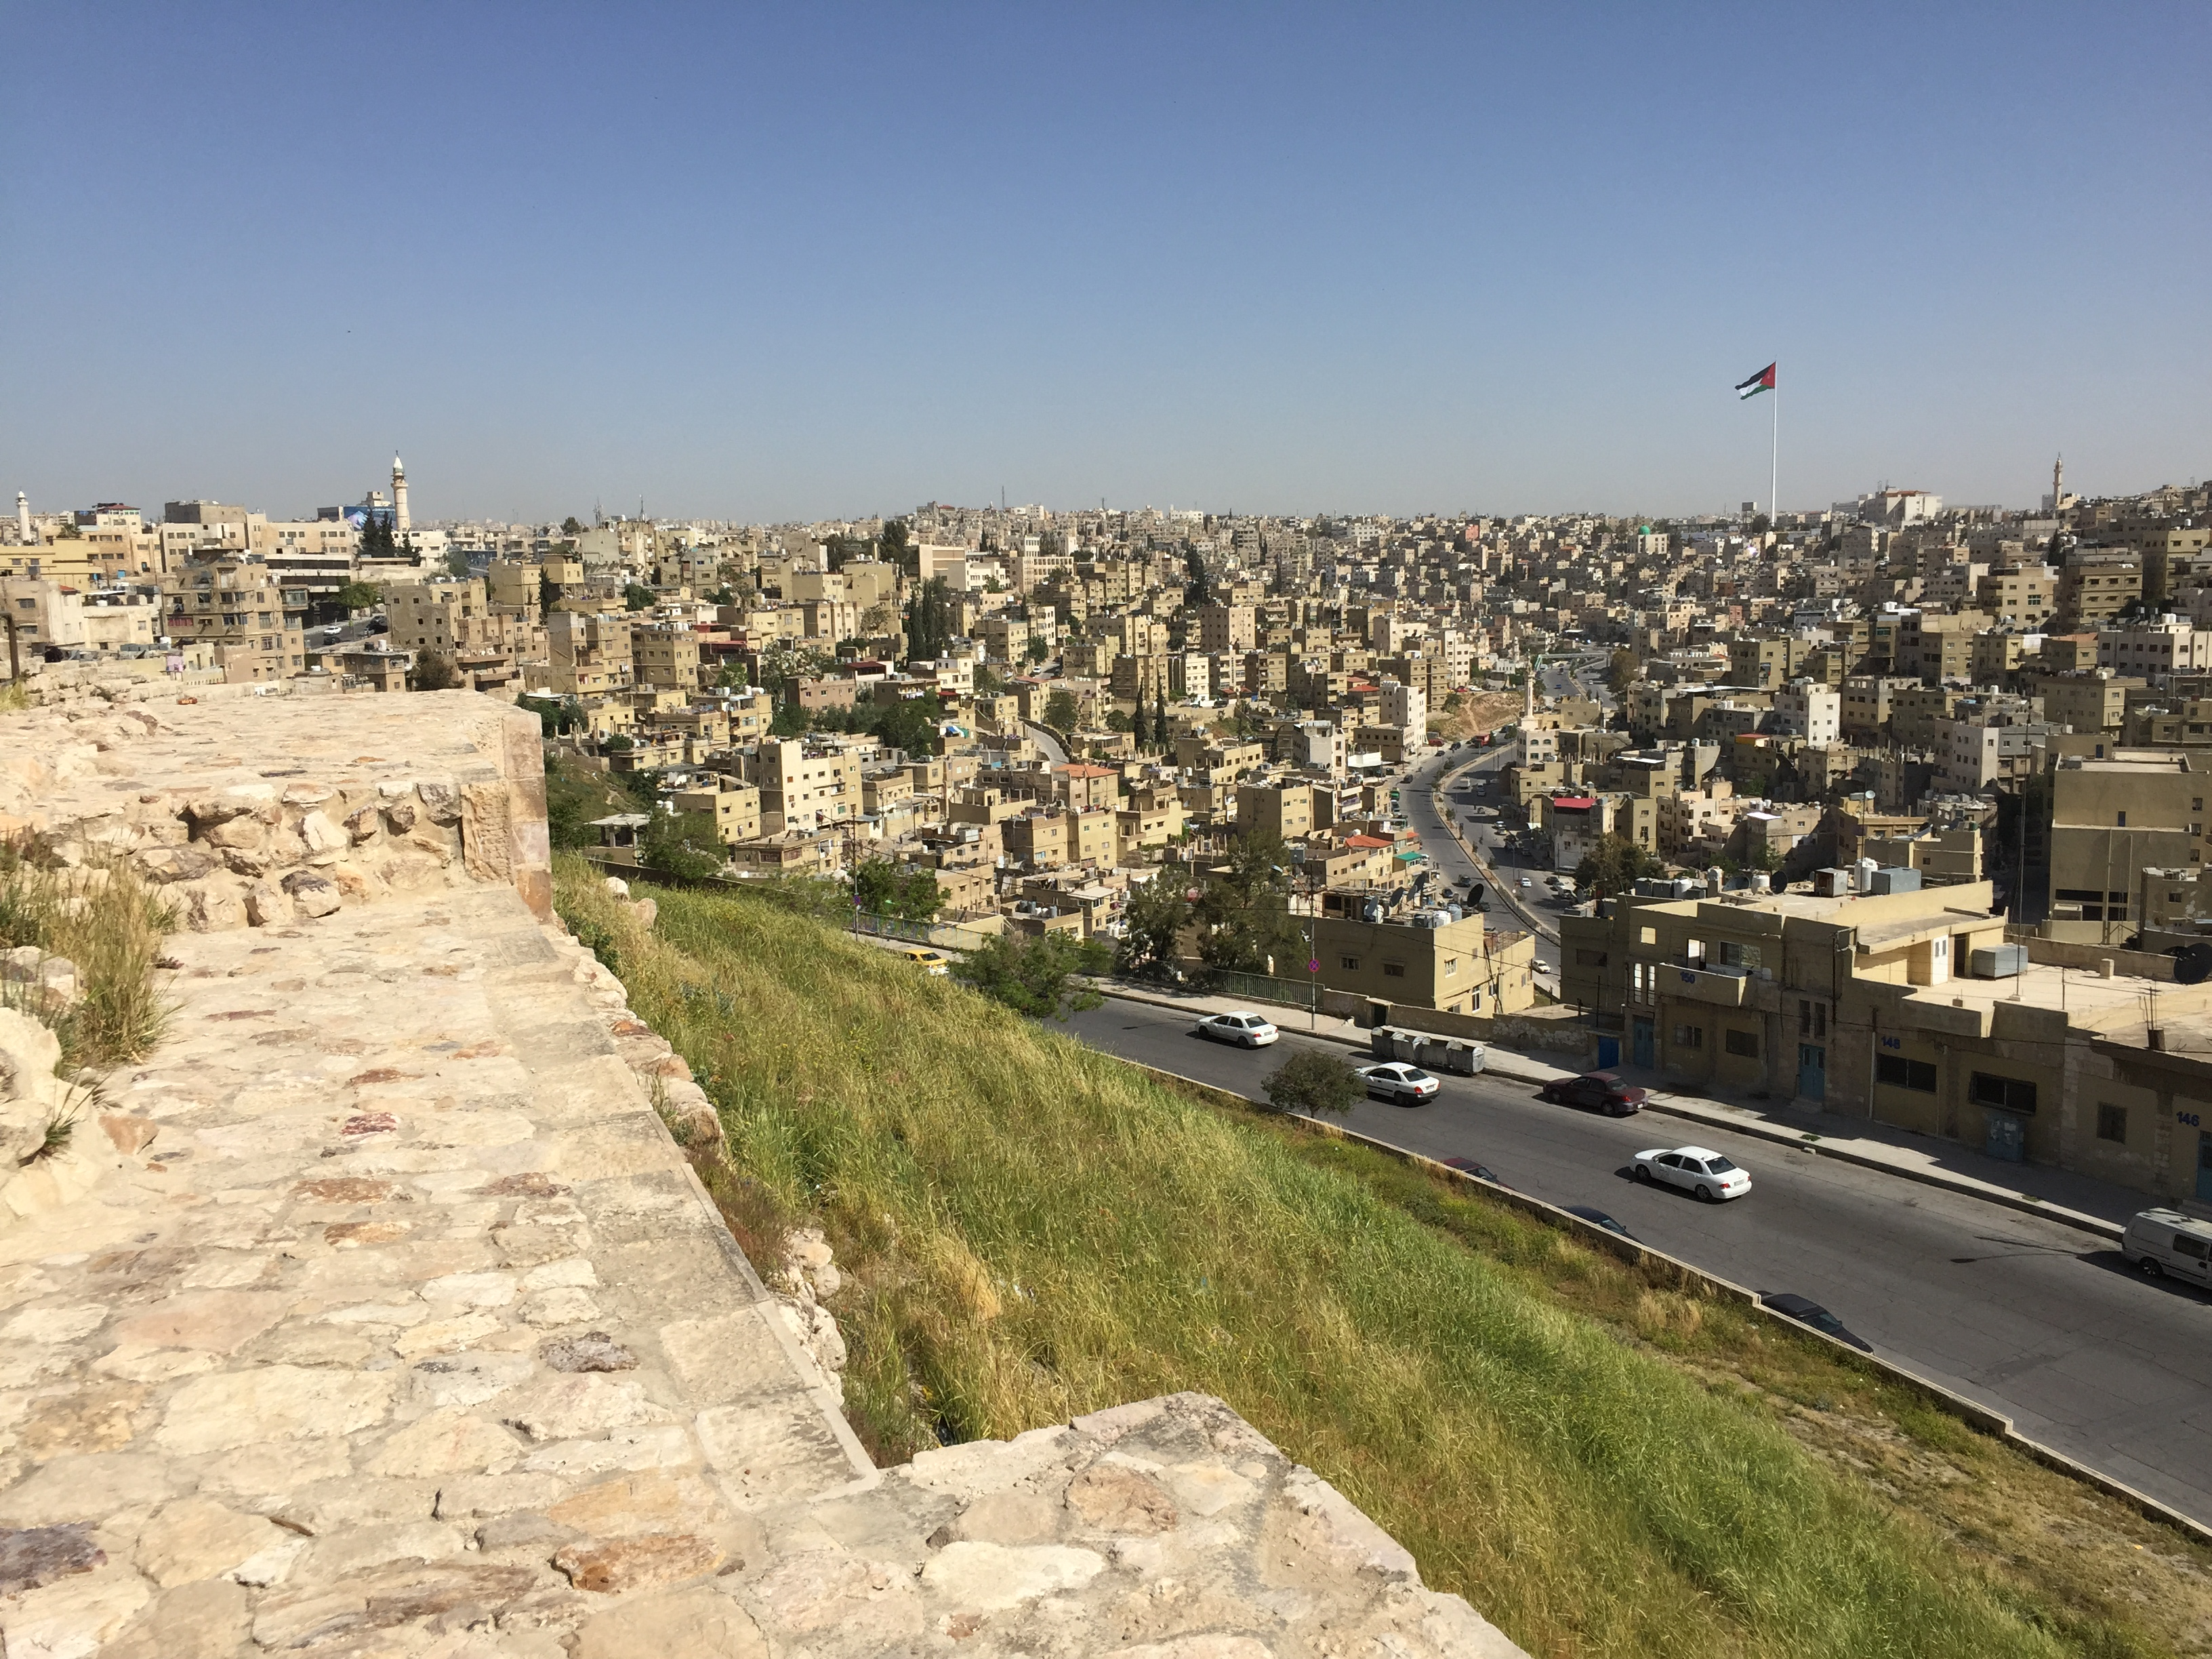 Overlooking downtown Amman (1)